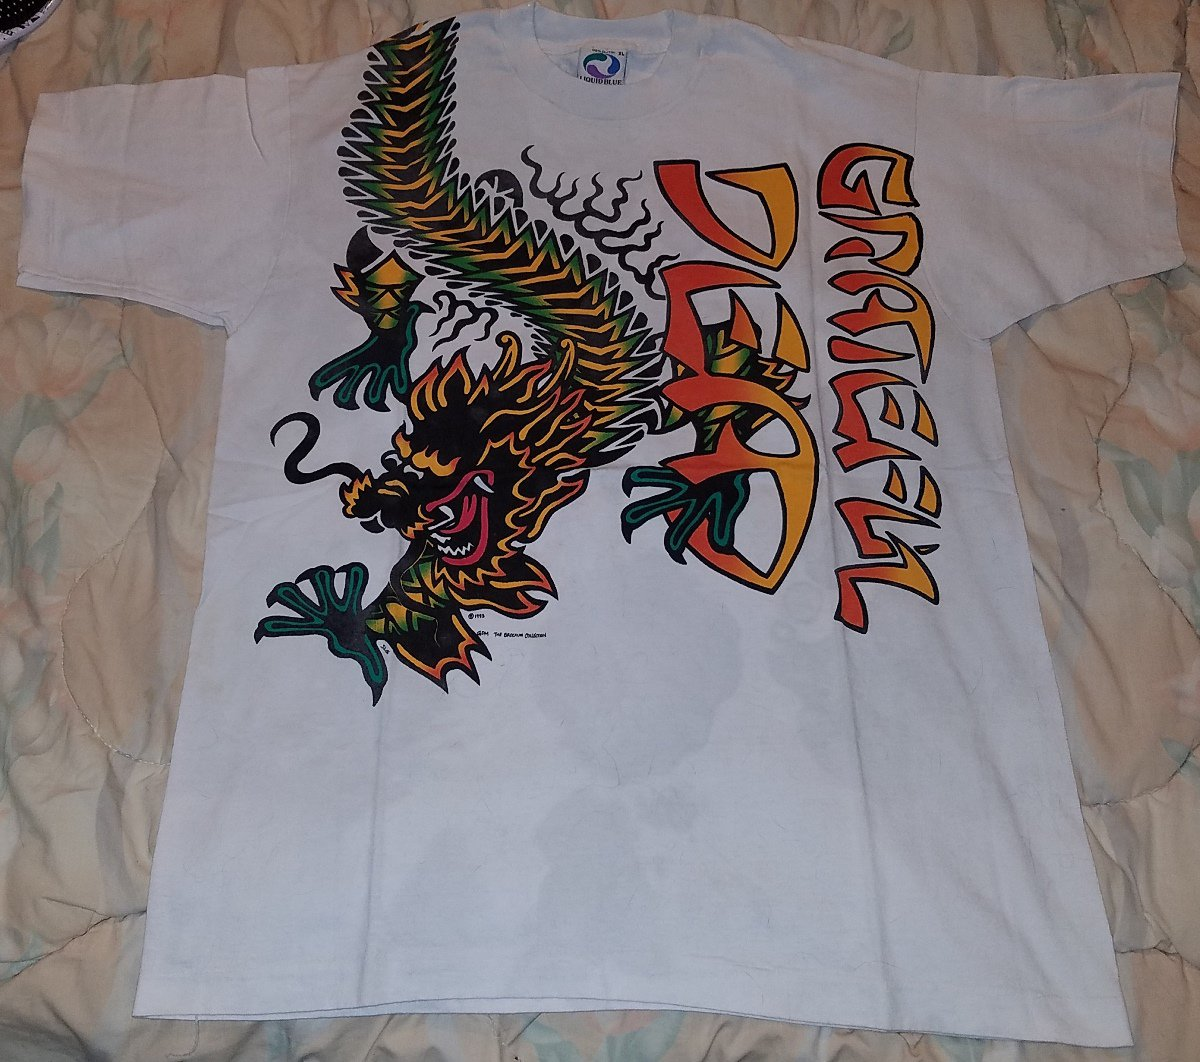 73e0dced415 GRATEFUL DEAD 1993 CHINESE NEW YEAR CONCERT TOUR T-SHIRT XL VINTAGE